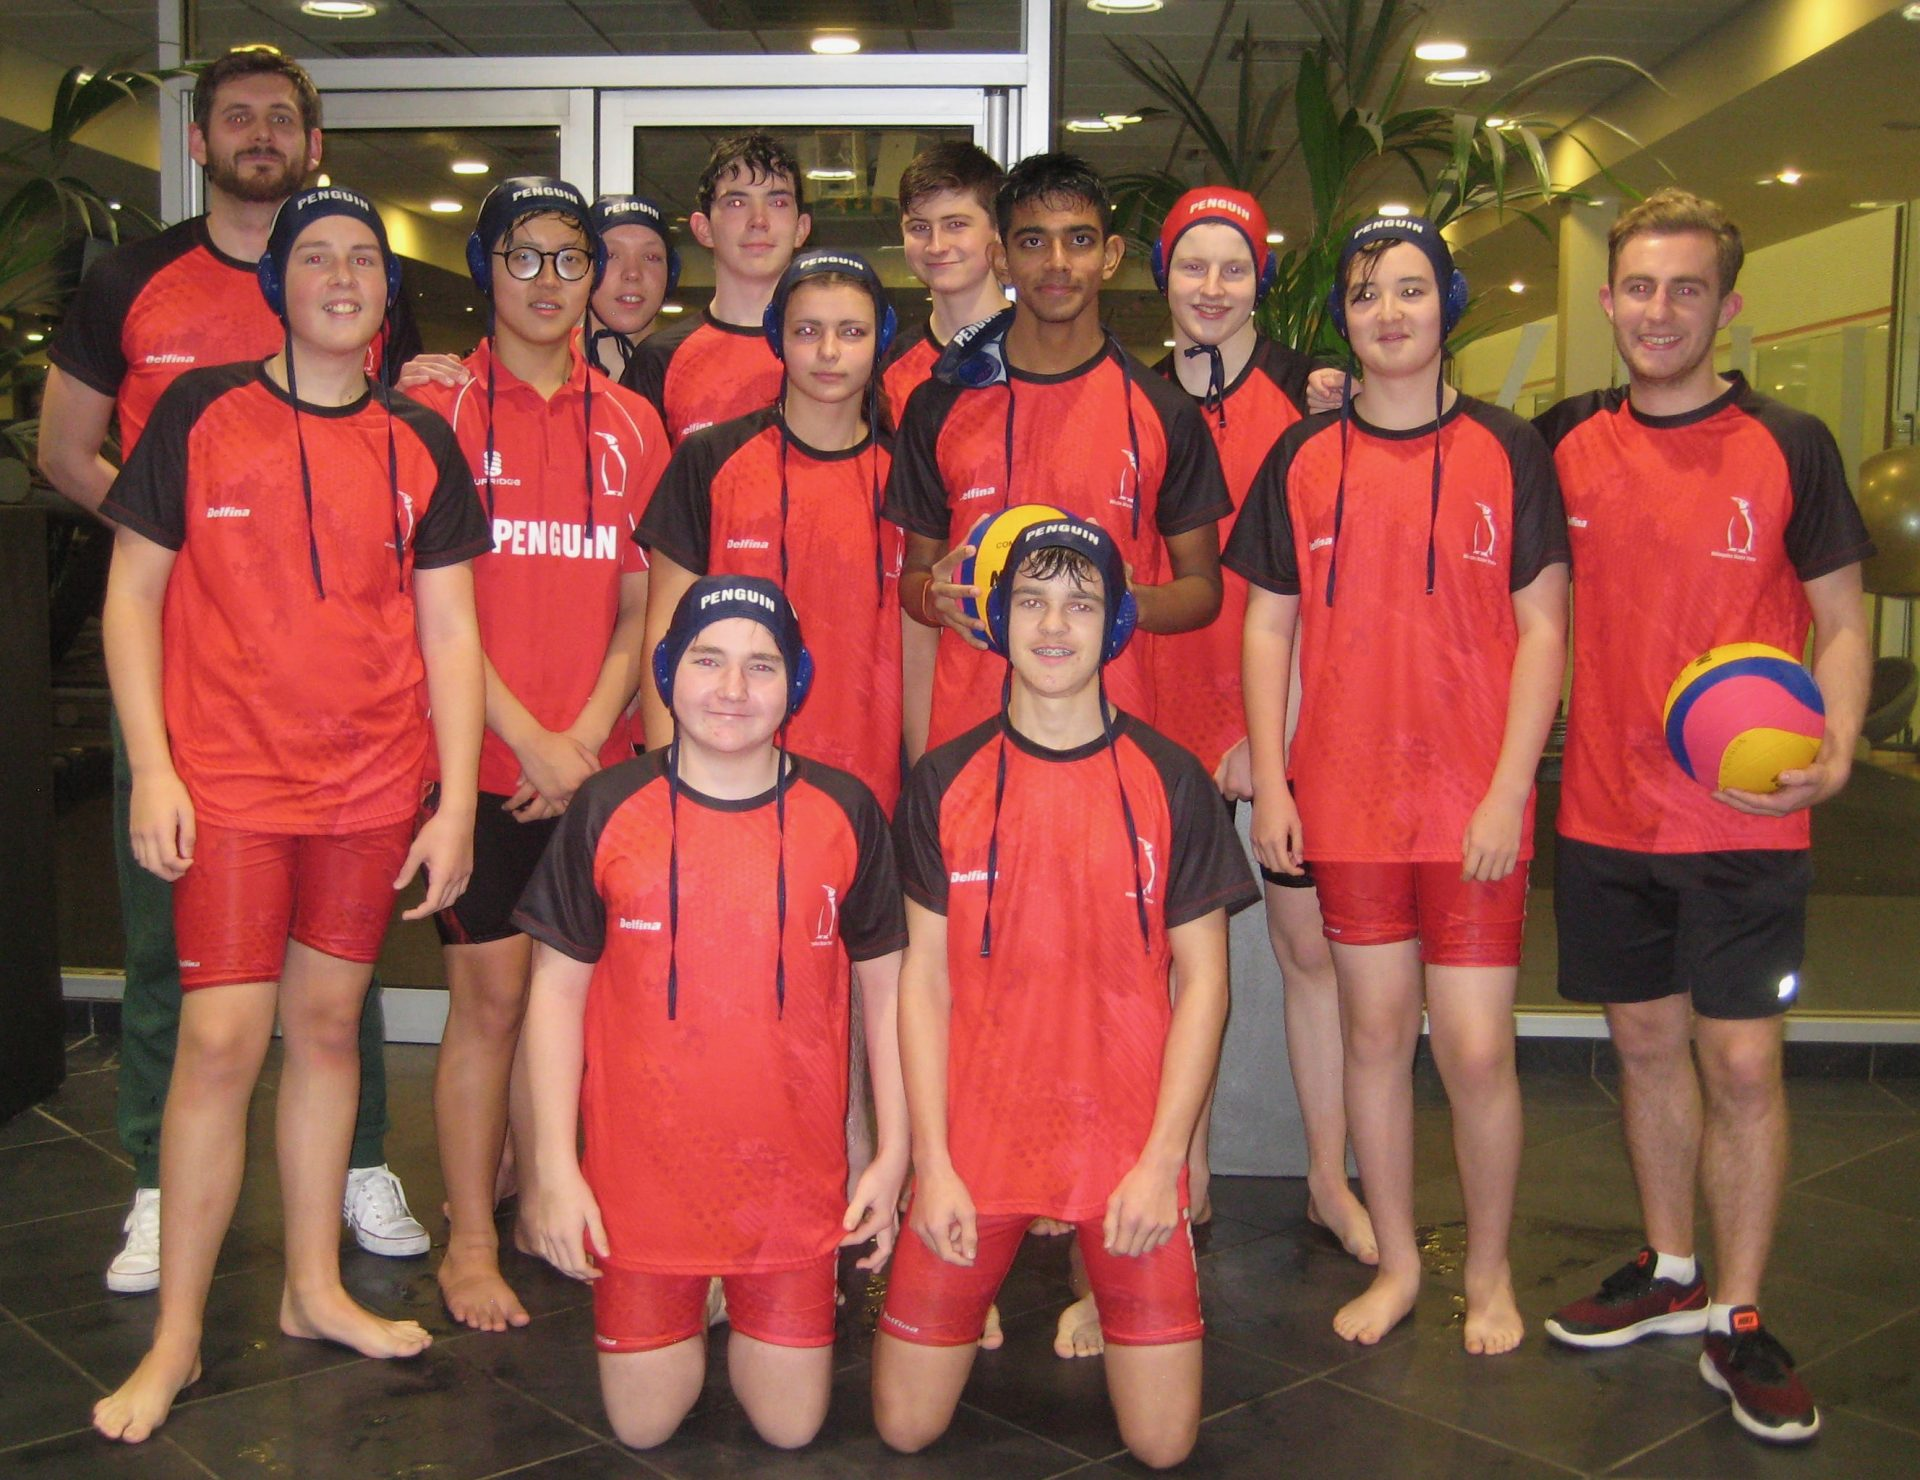 Hillingdon Penguin under 16 water polo team